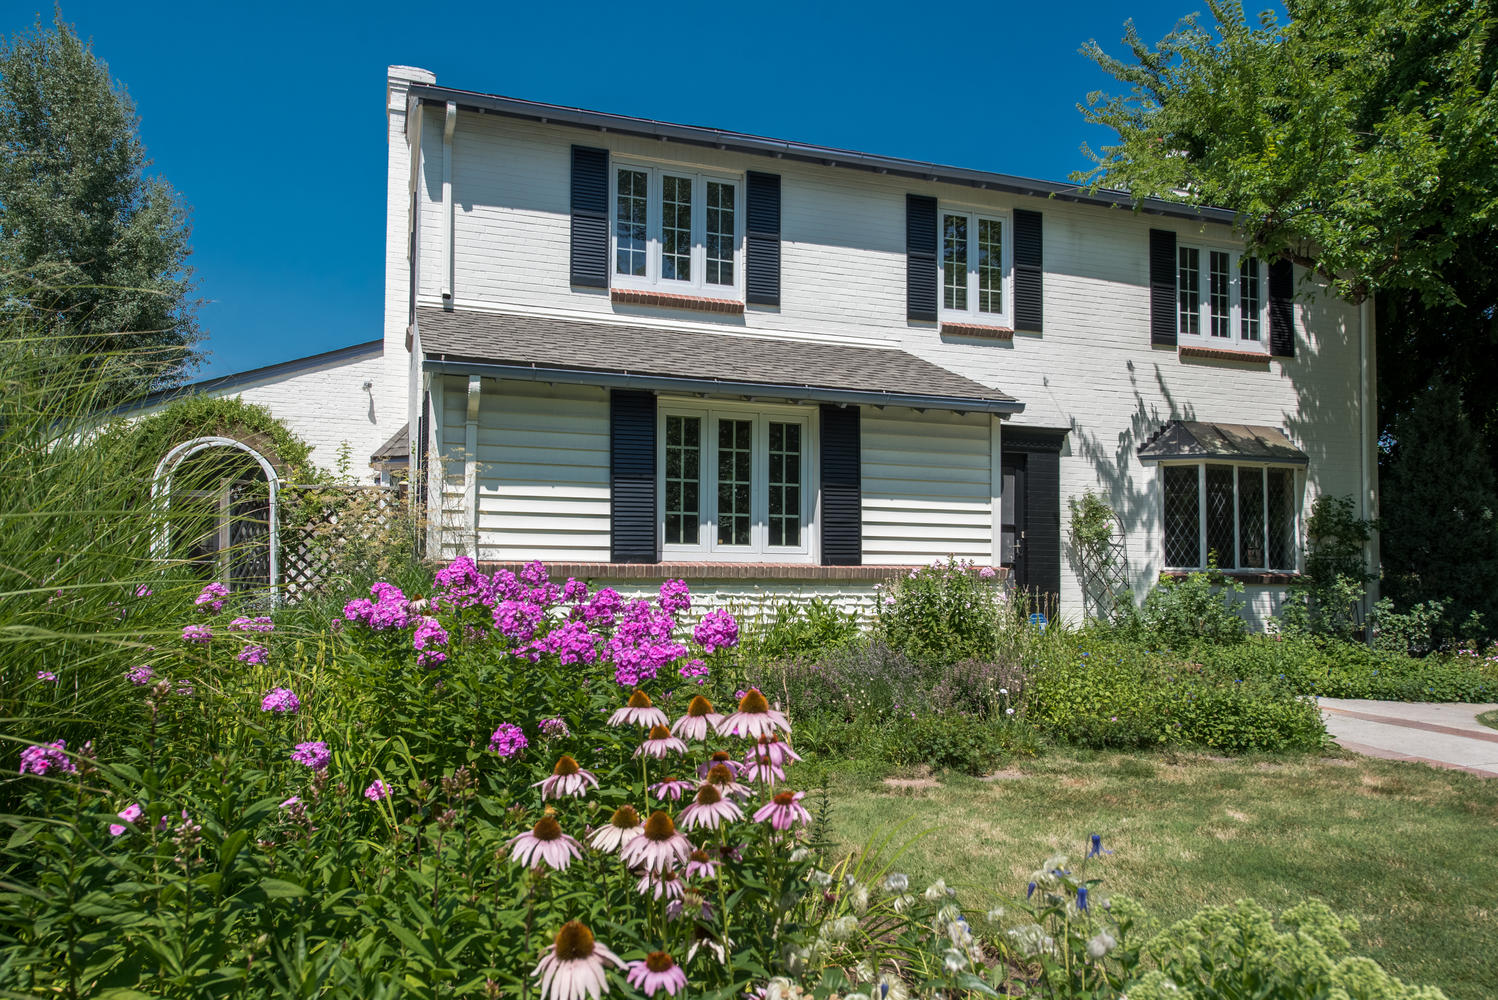 Single Family Home for Active at Classic New England Style Colonial 5745 East 6th Avenue Parkway Denver, Colorado 80220 United States